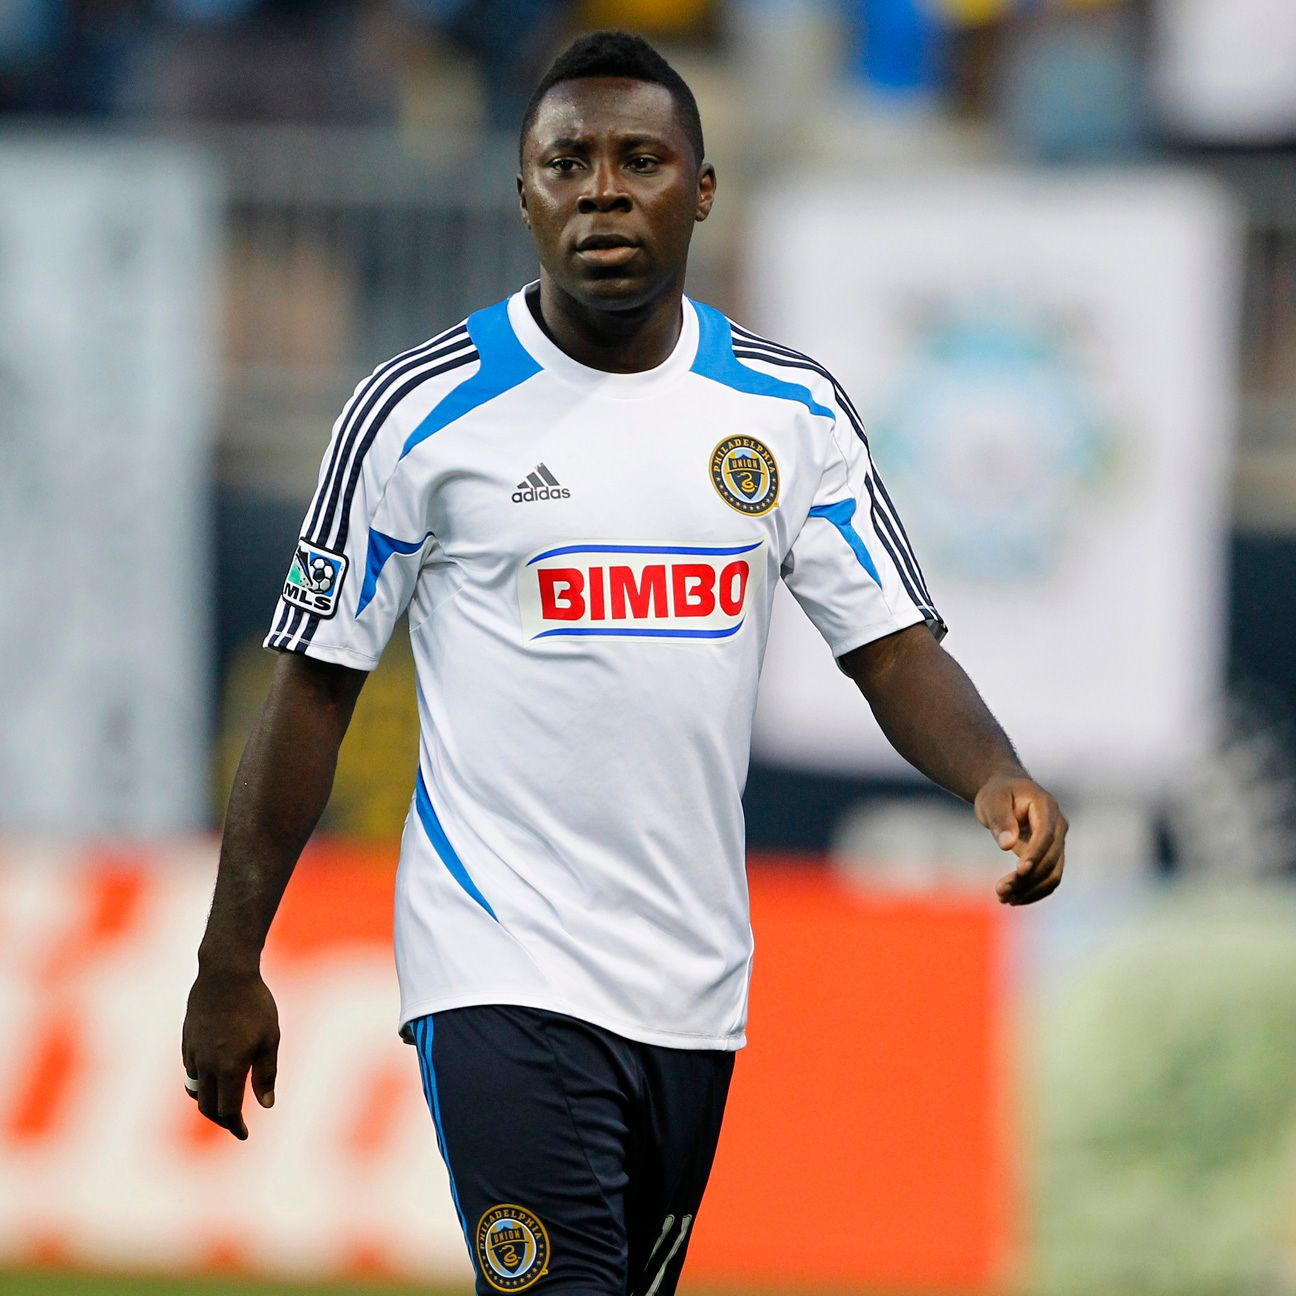 Freddy Adu, pictured above with the Philadelphia Union, struggled to live up to sky-high expectations.